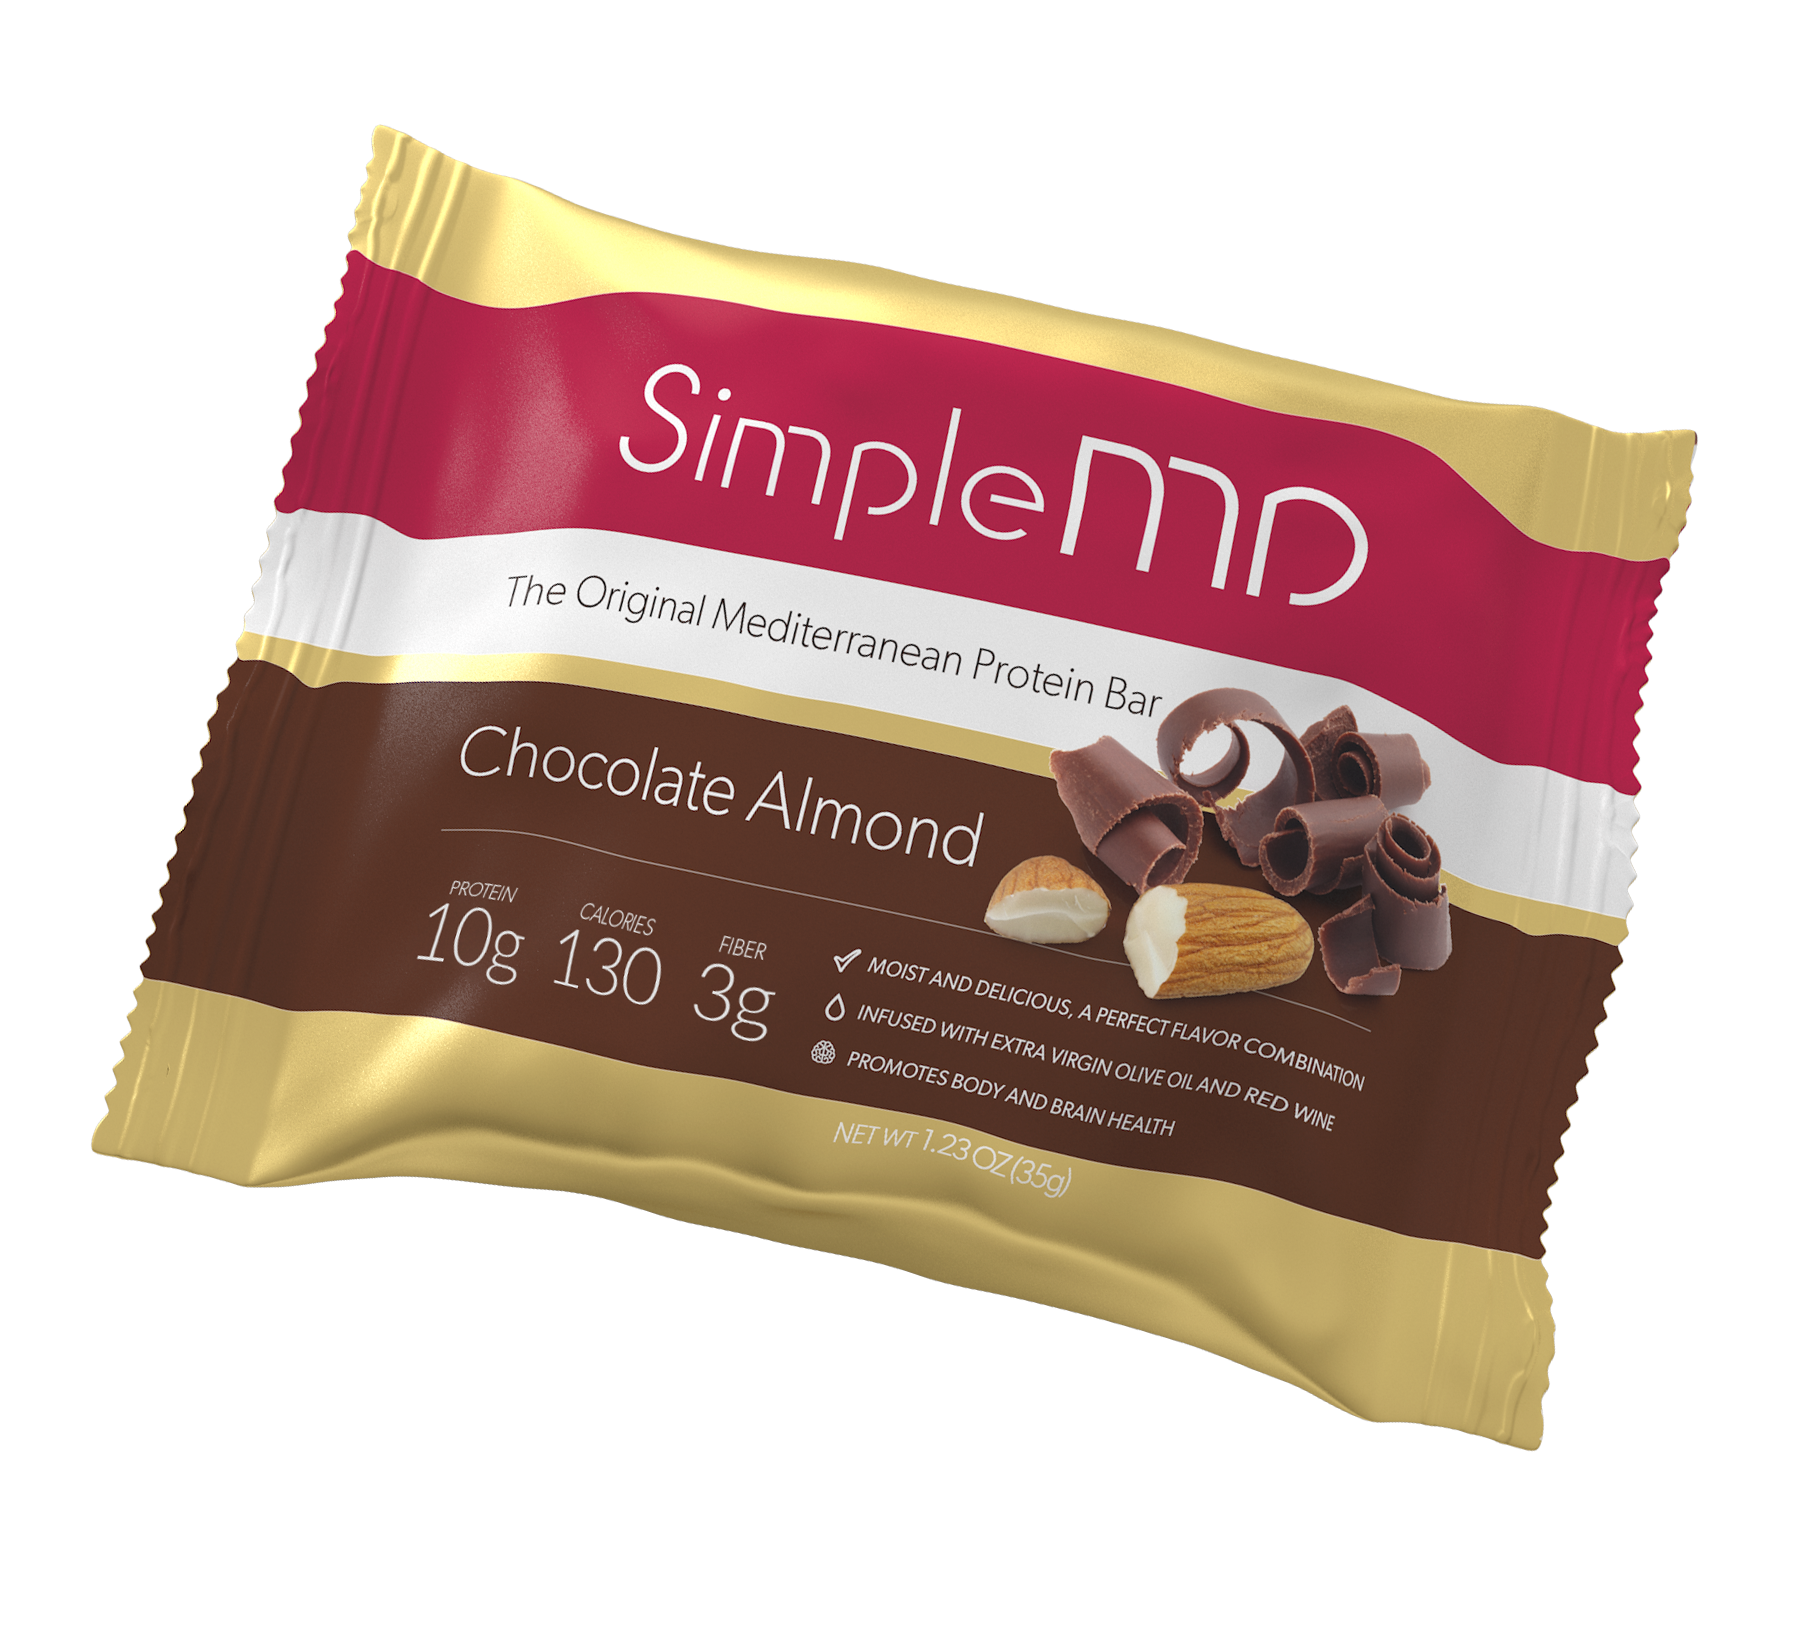 Milk chocolate on the outside, almond crunch on the inside, great flavor all over. Satisfy your craving for chocolate, while enjoying 10 grams of protein, 3 grams of fiber in a 130 calorie bar. Made with extra virgin olive oil and Italian red wine. Gluten-free, GMO-free and kosher.